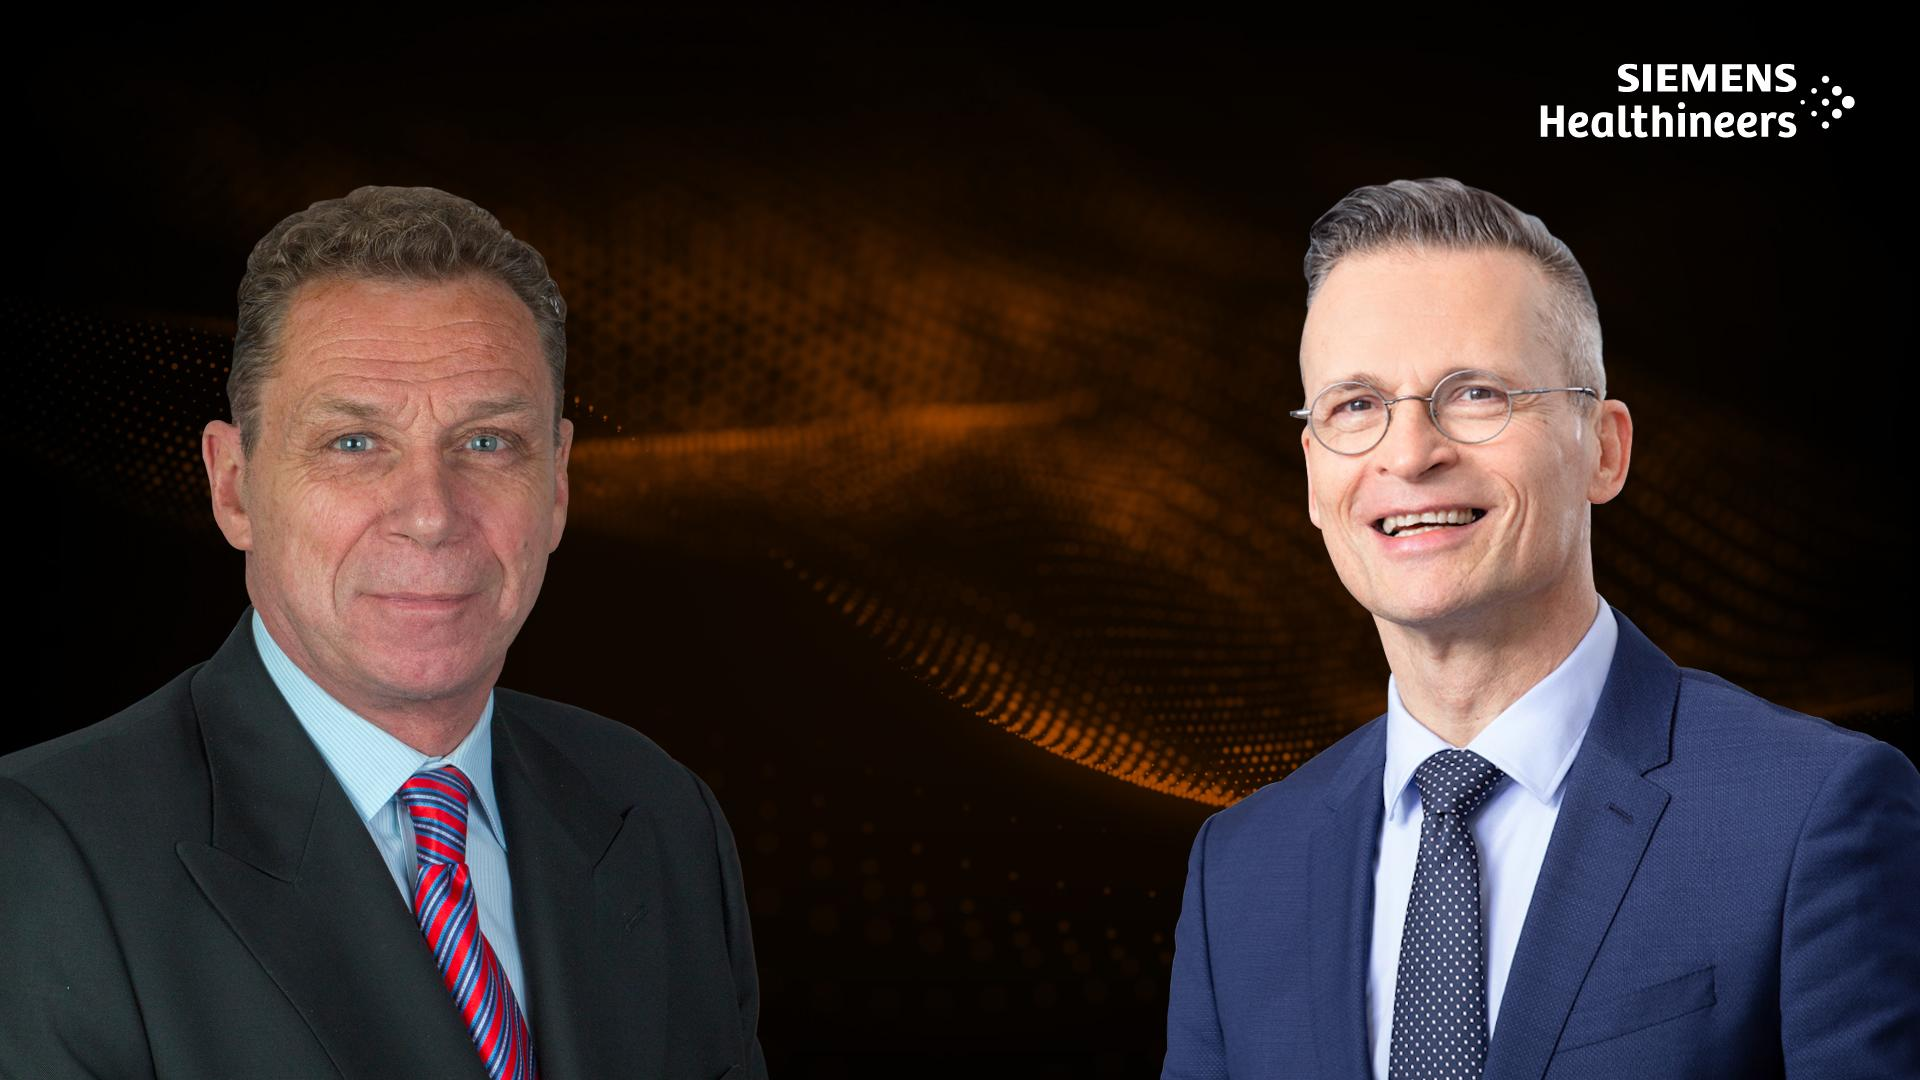 In this podcast, Dieter R. Enzmann (l.) and Christoph Zindel discuss how decentralization could help improve care delivery